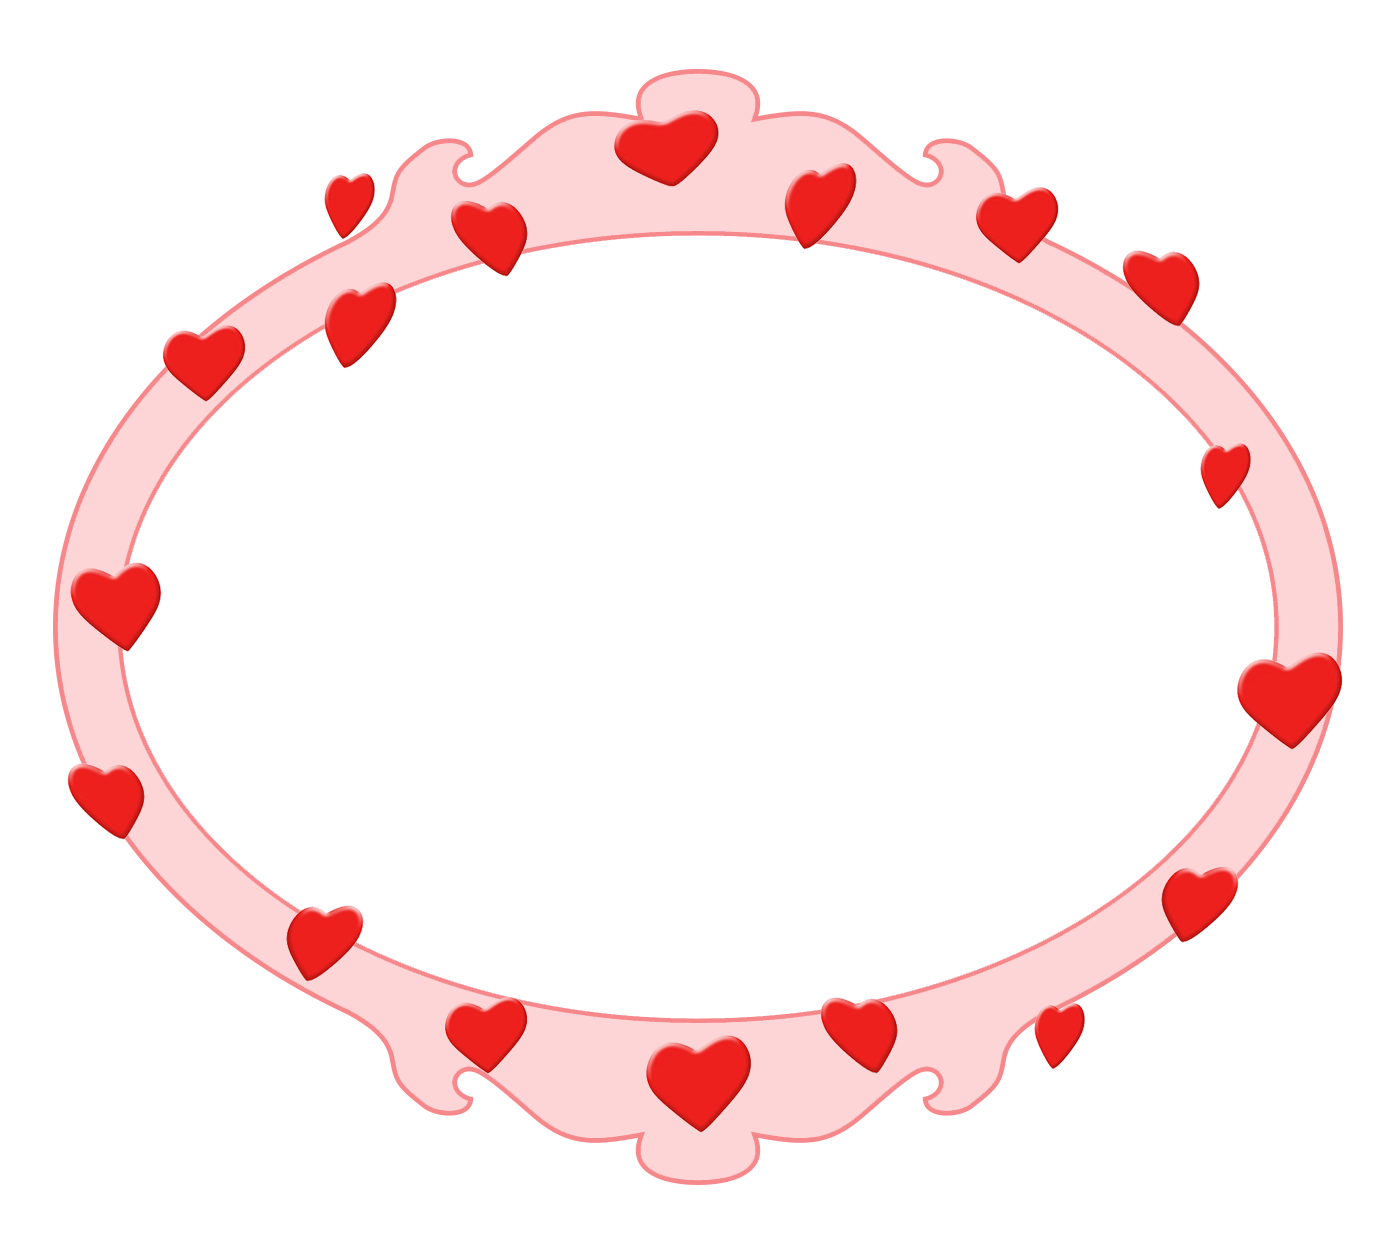 pink Valentine's Day frame with hearts